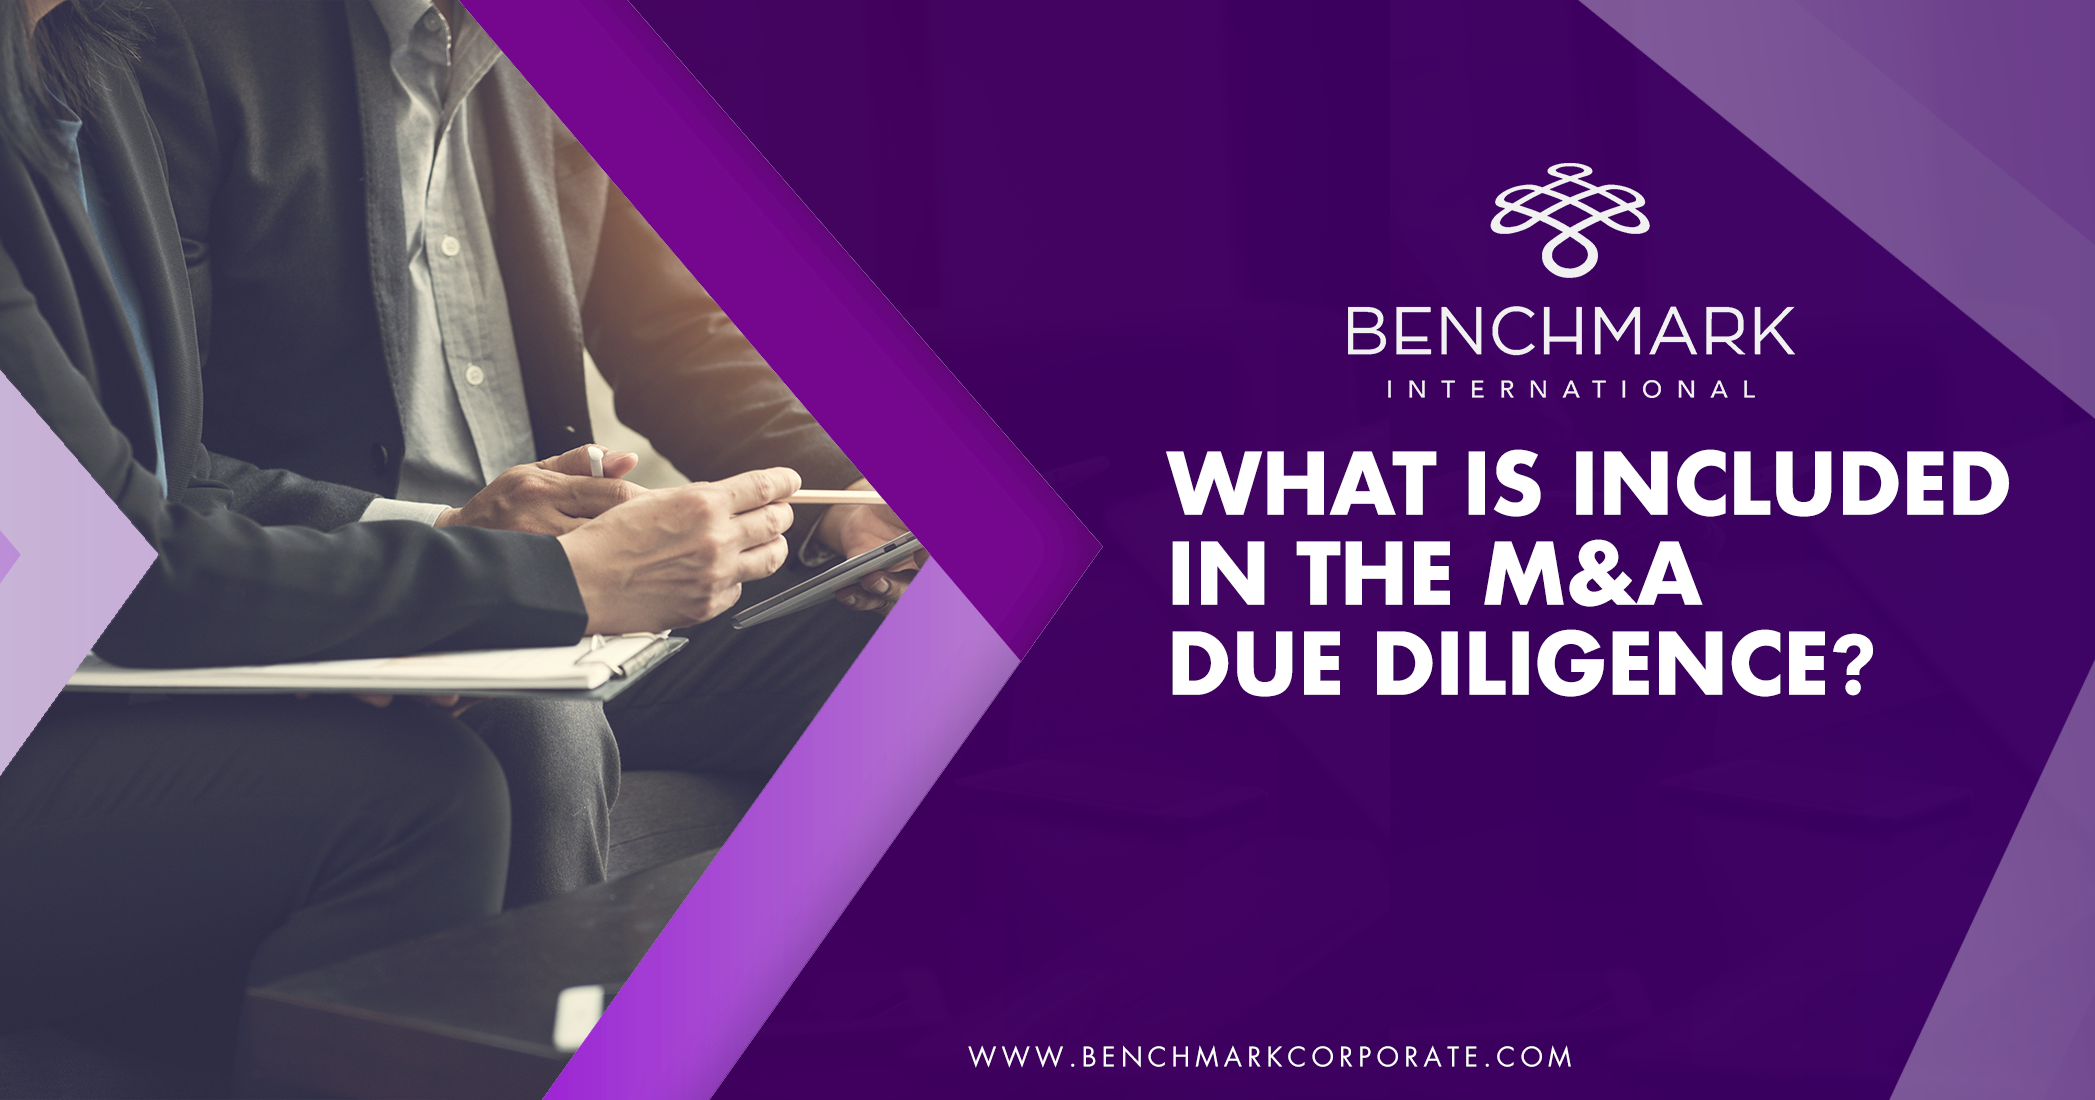 What is included in the M&A due diligence?